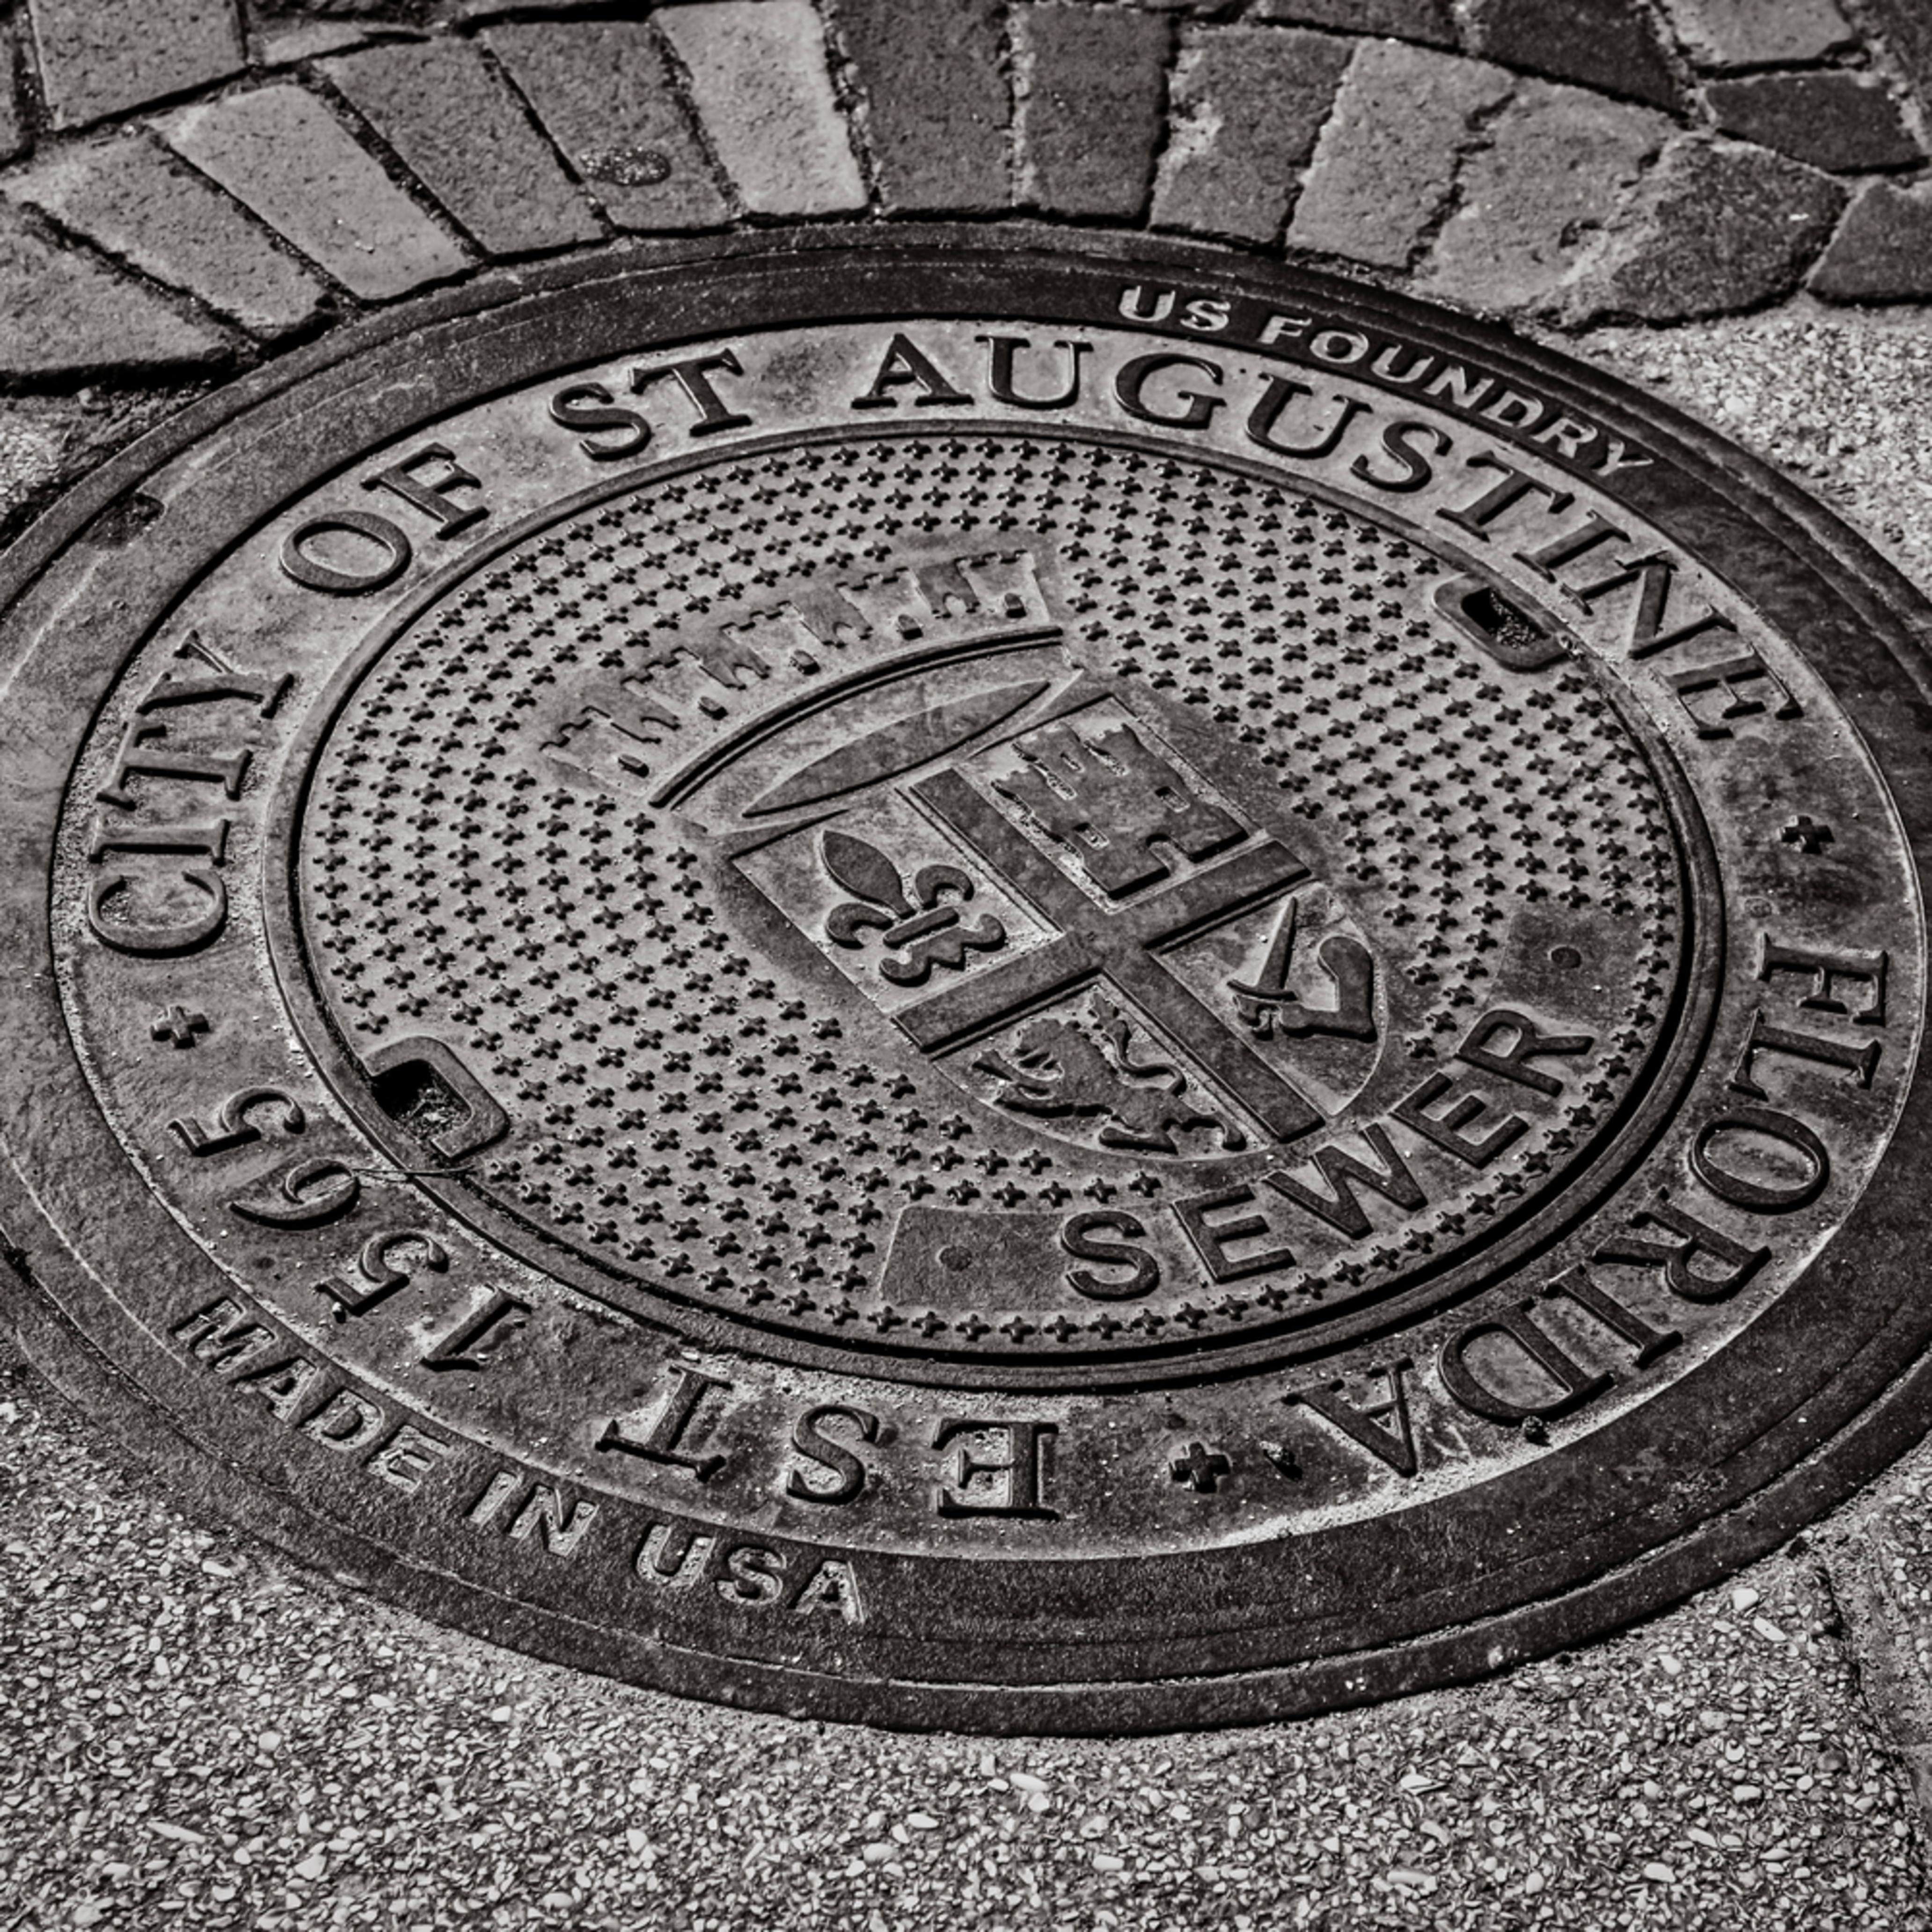 Andy crawford photography st. augustine manhole cover 001 ipcppp